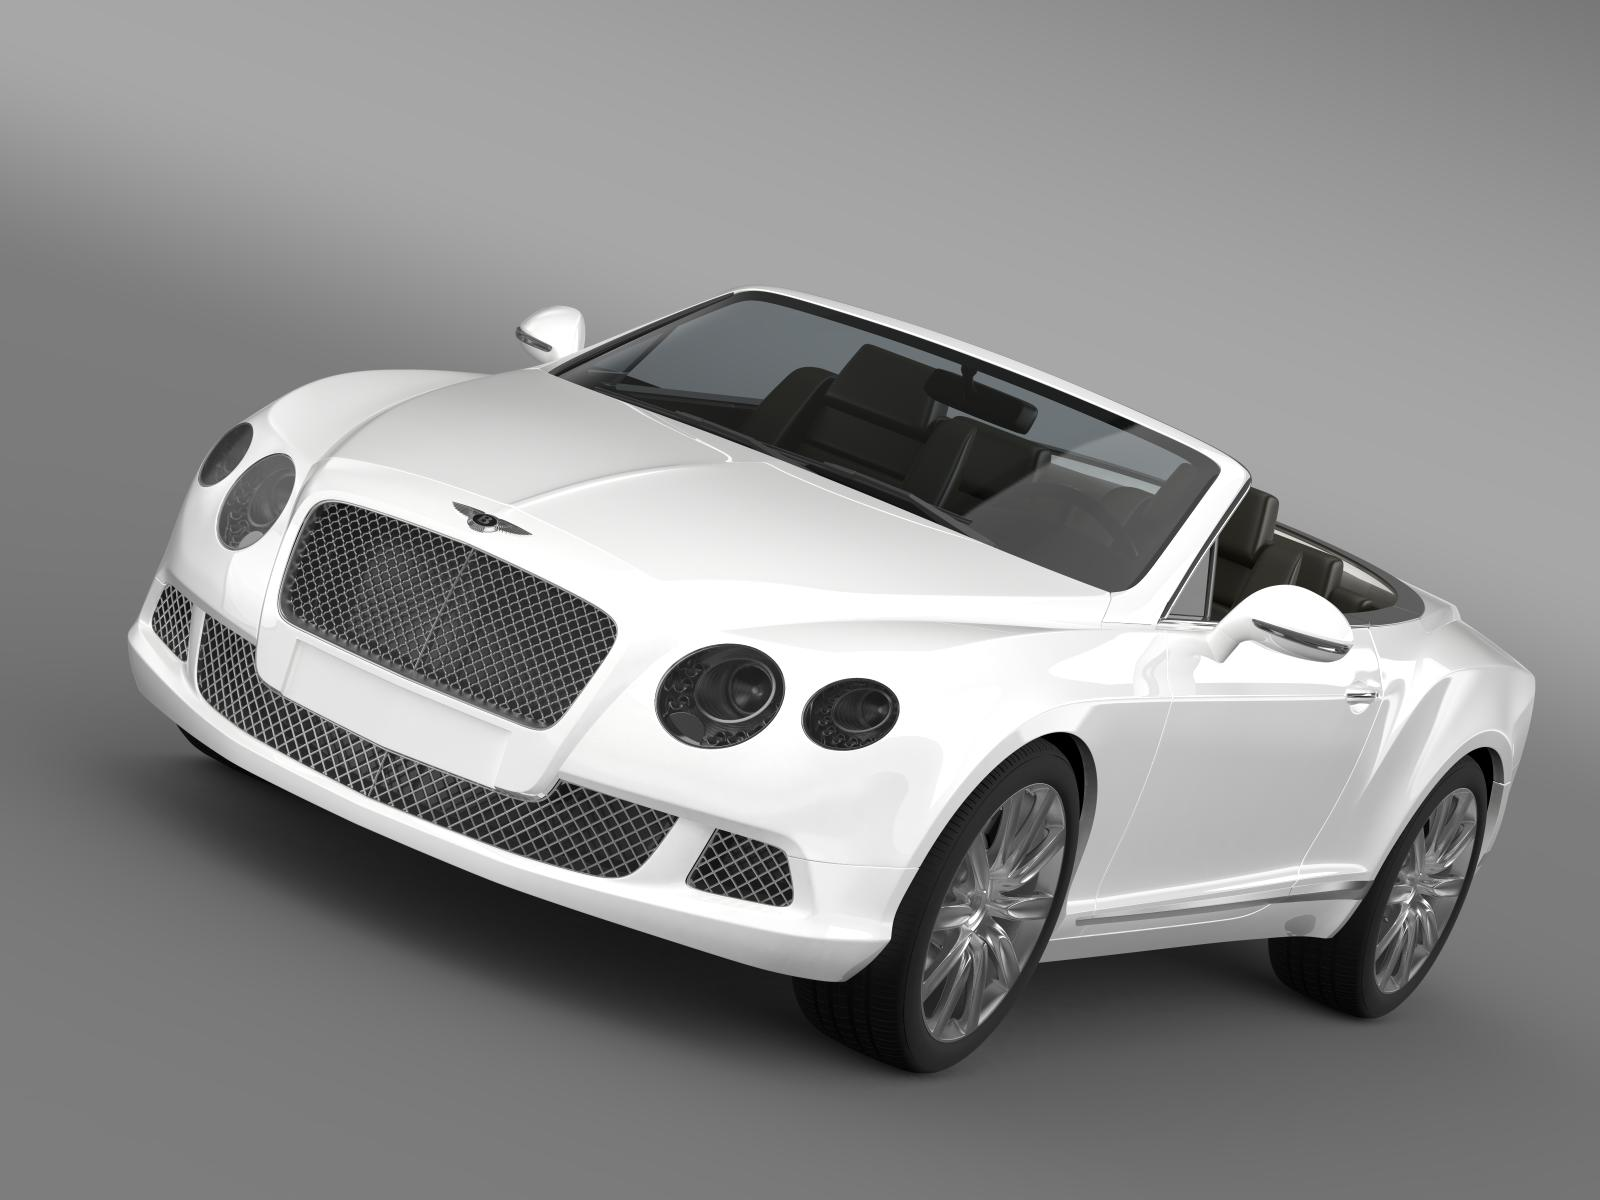 bentley continental gtc 2011 3d model 3ds max fbx c4d lwo ma mb hrc xsi obj 163884